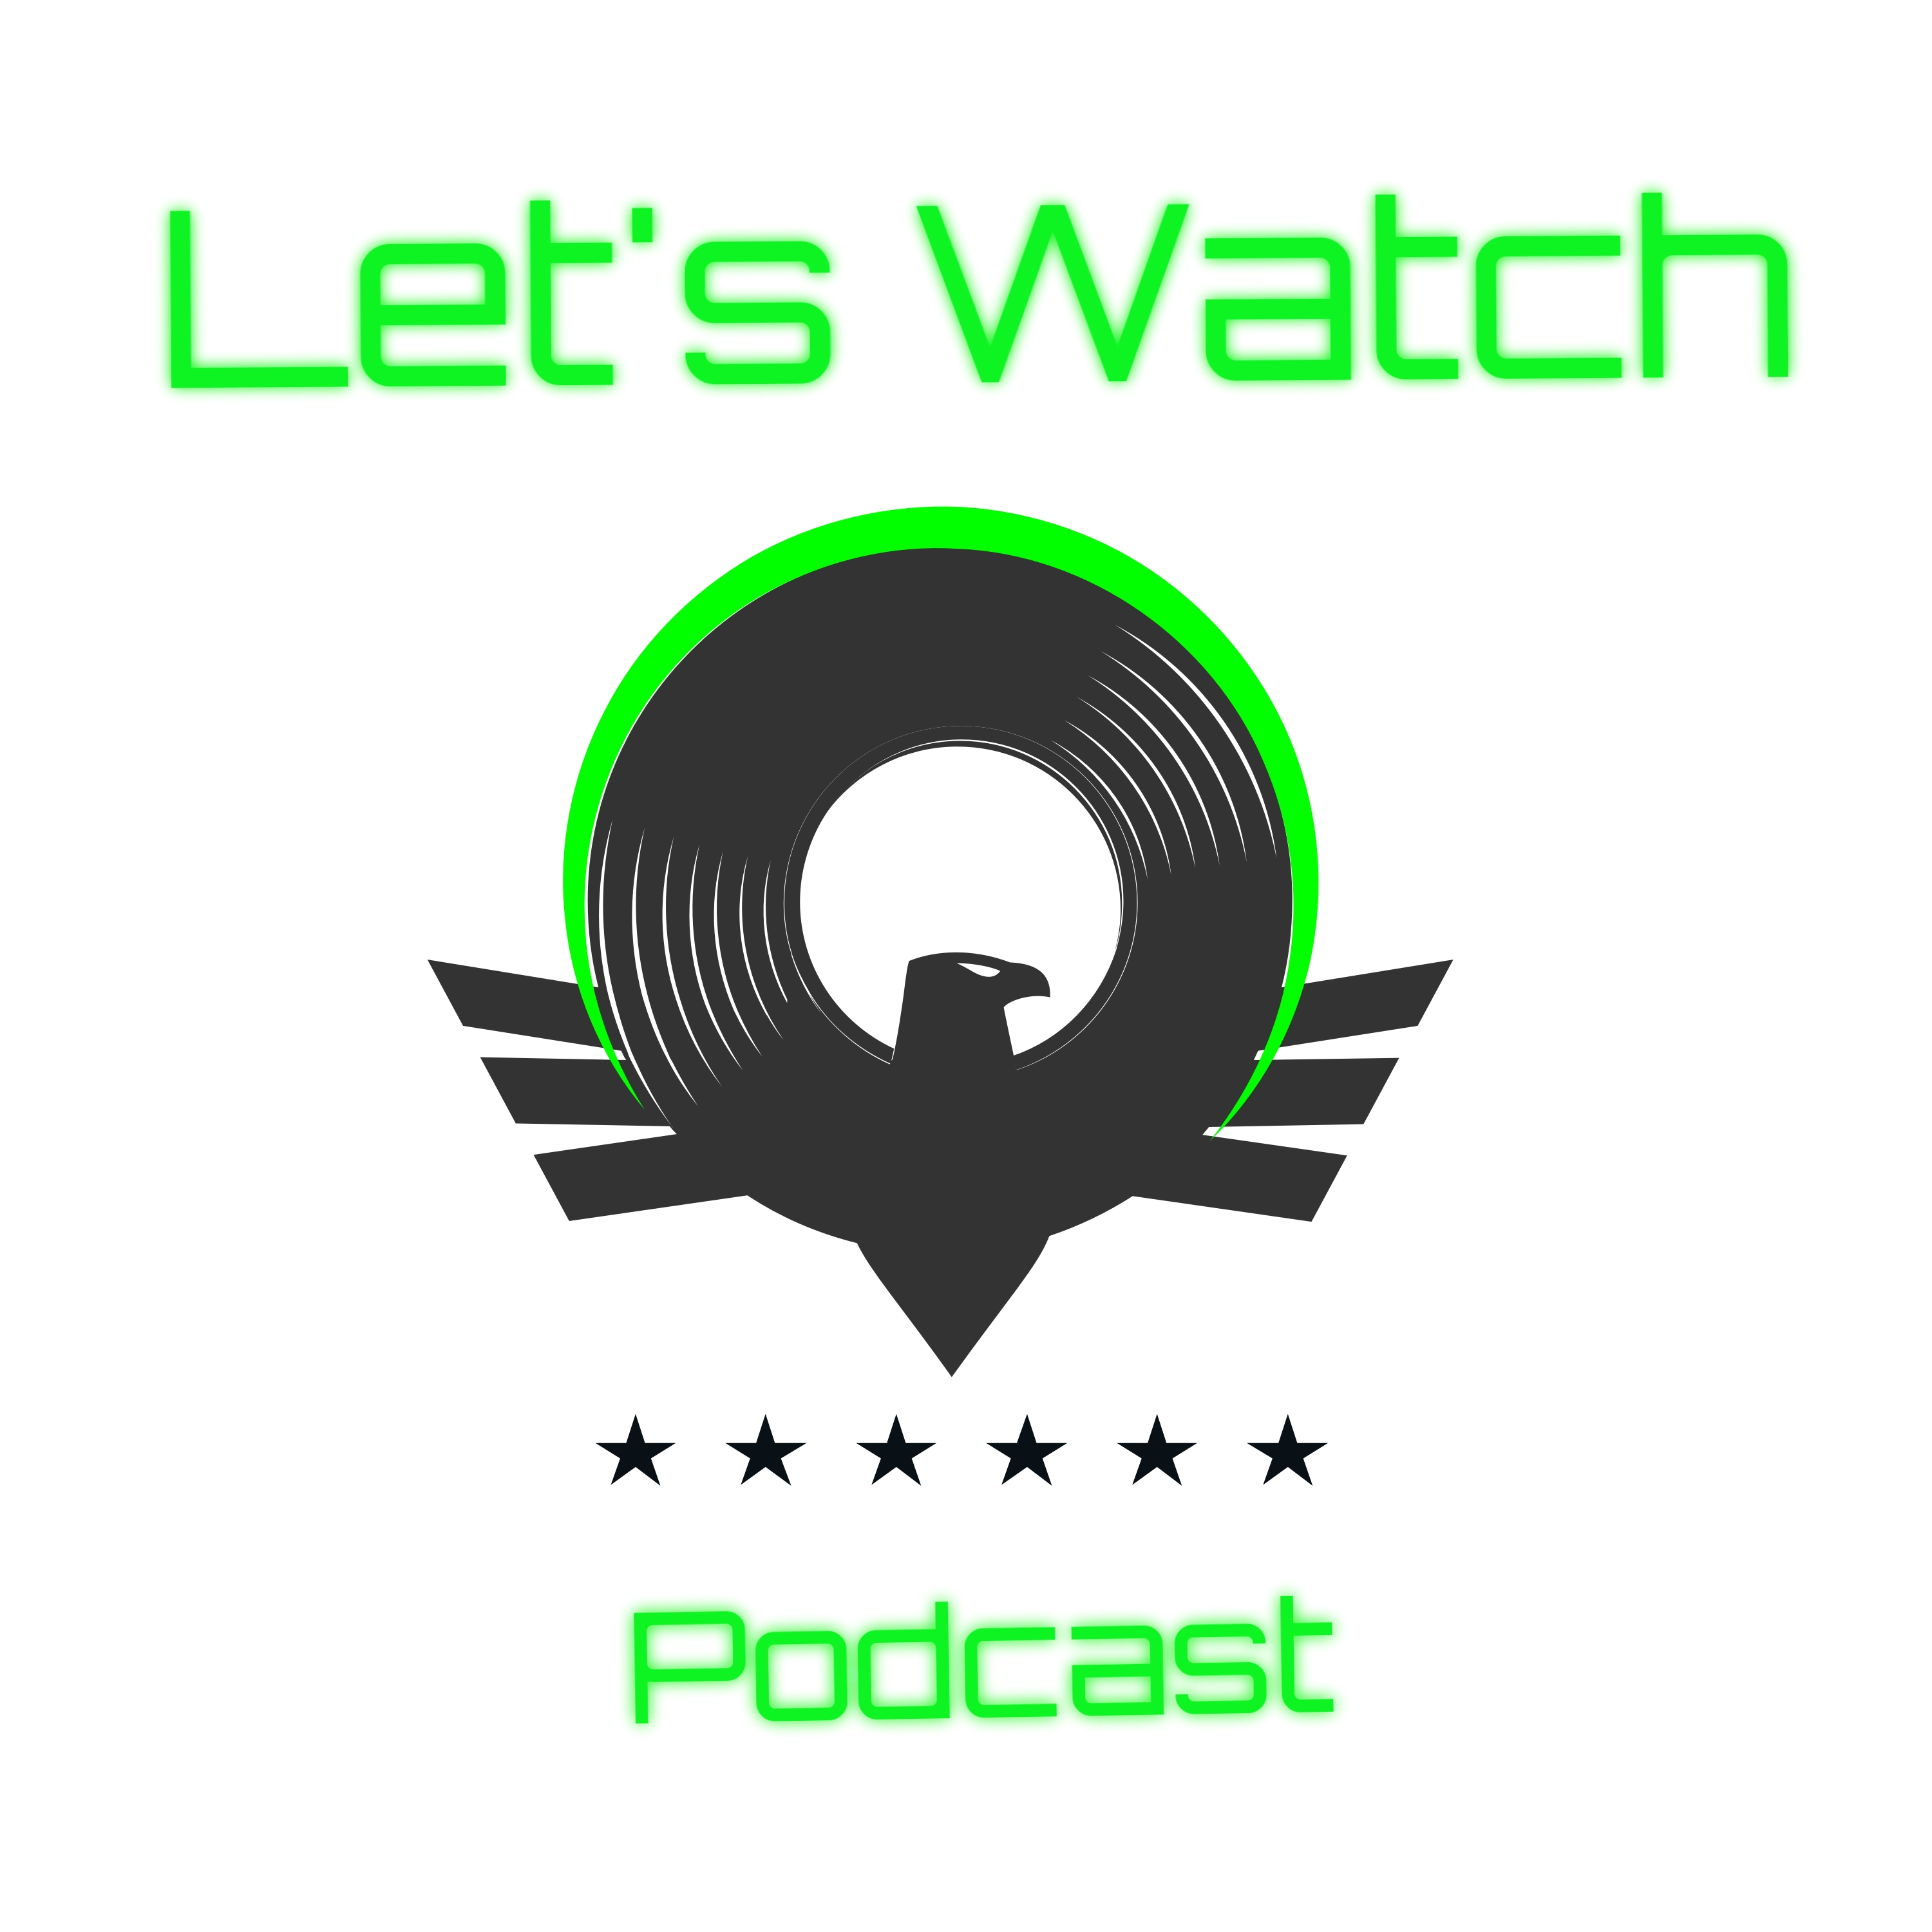 Let's Watch Podcast